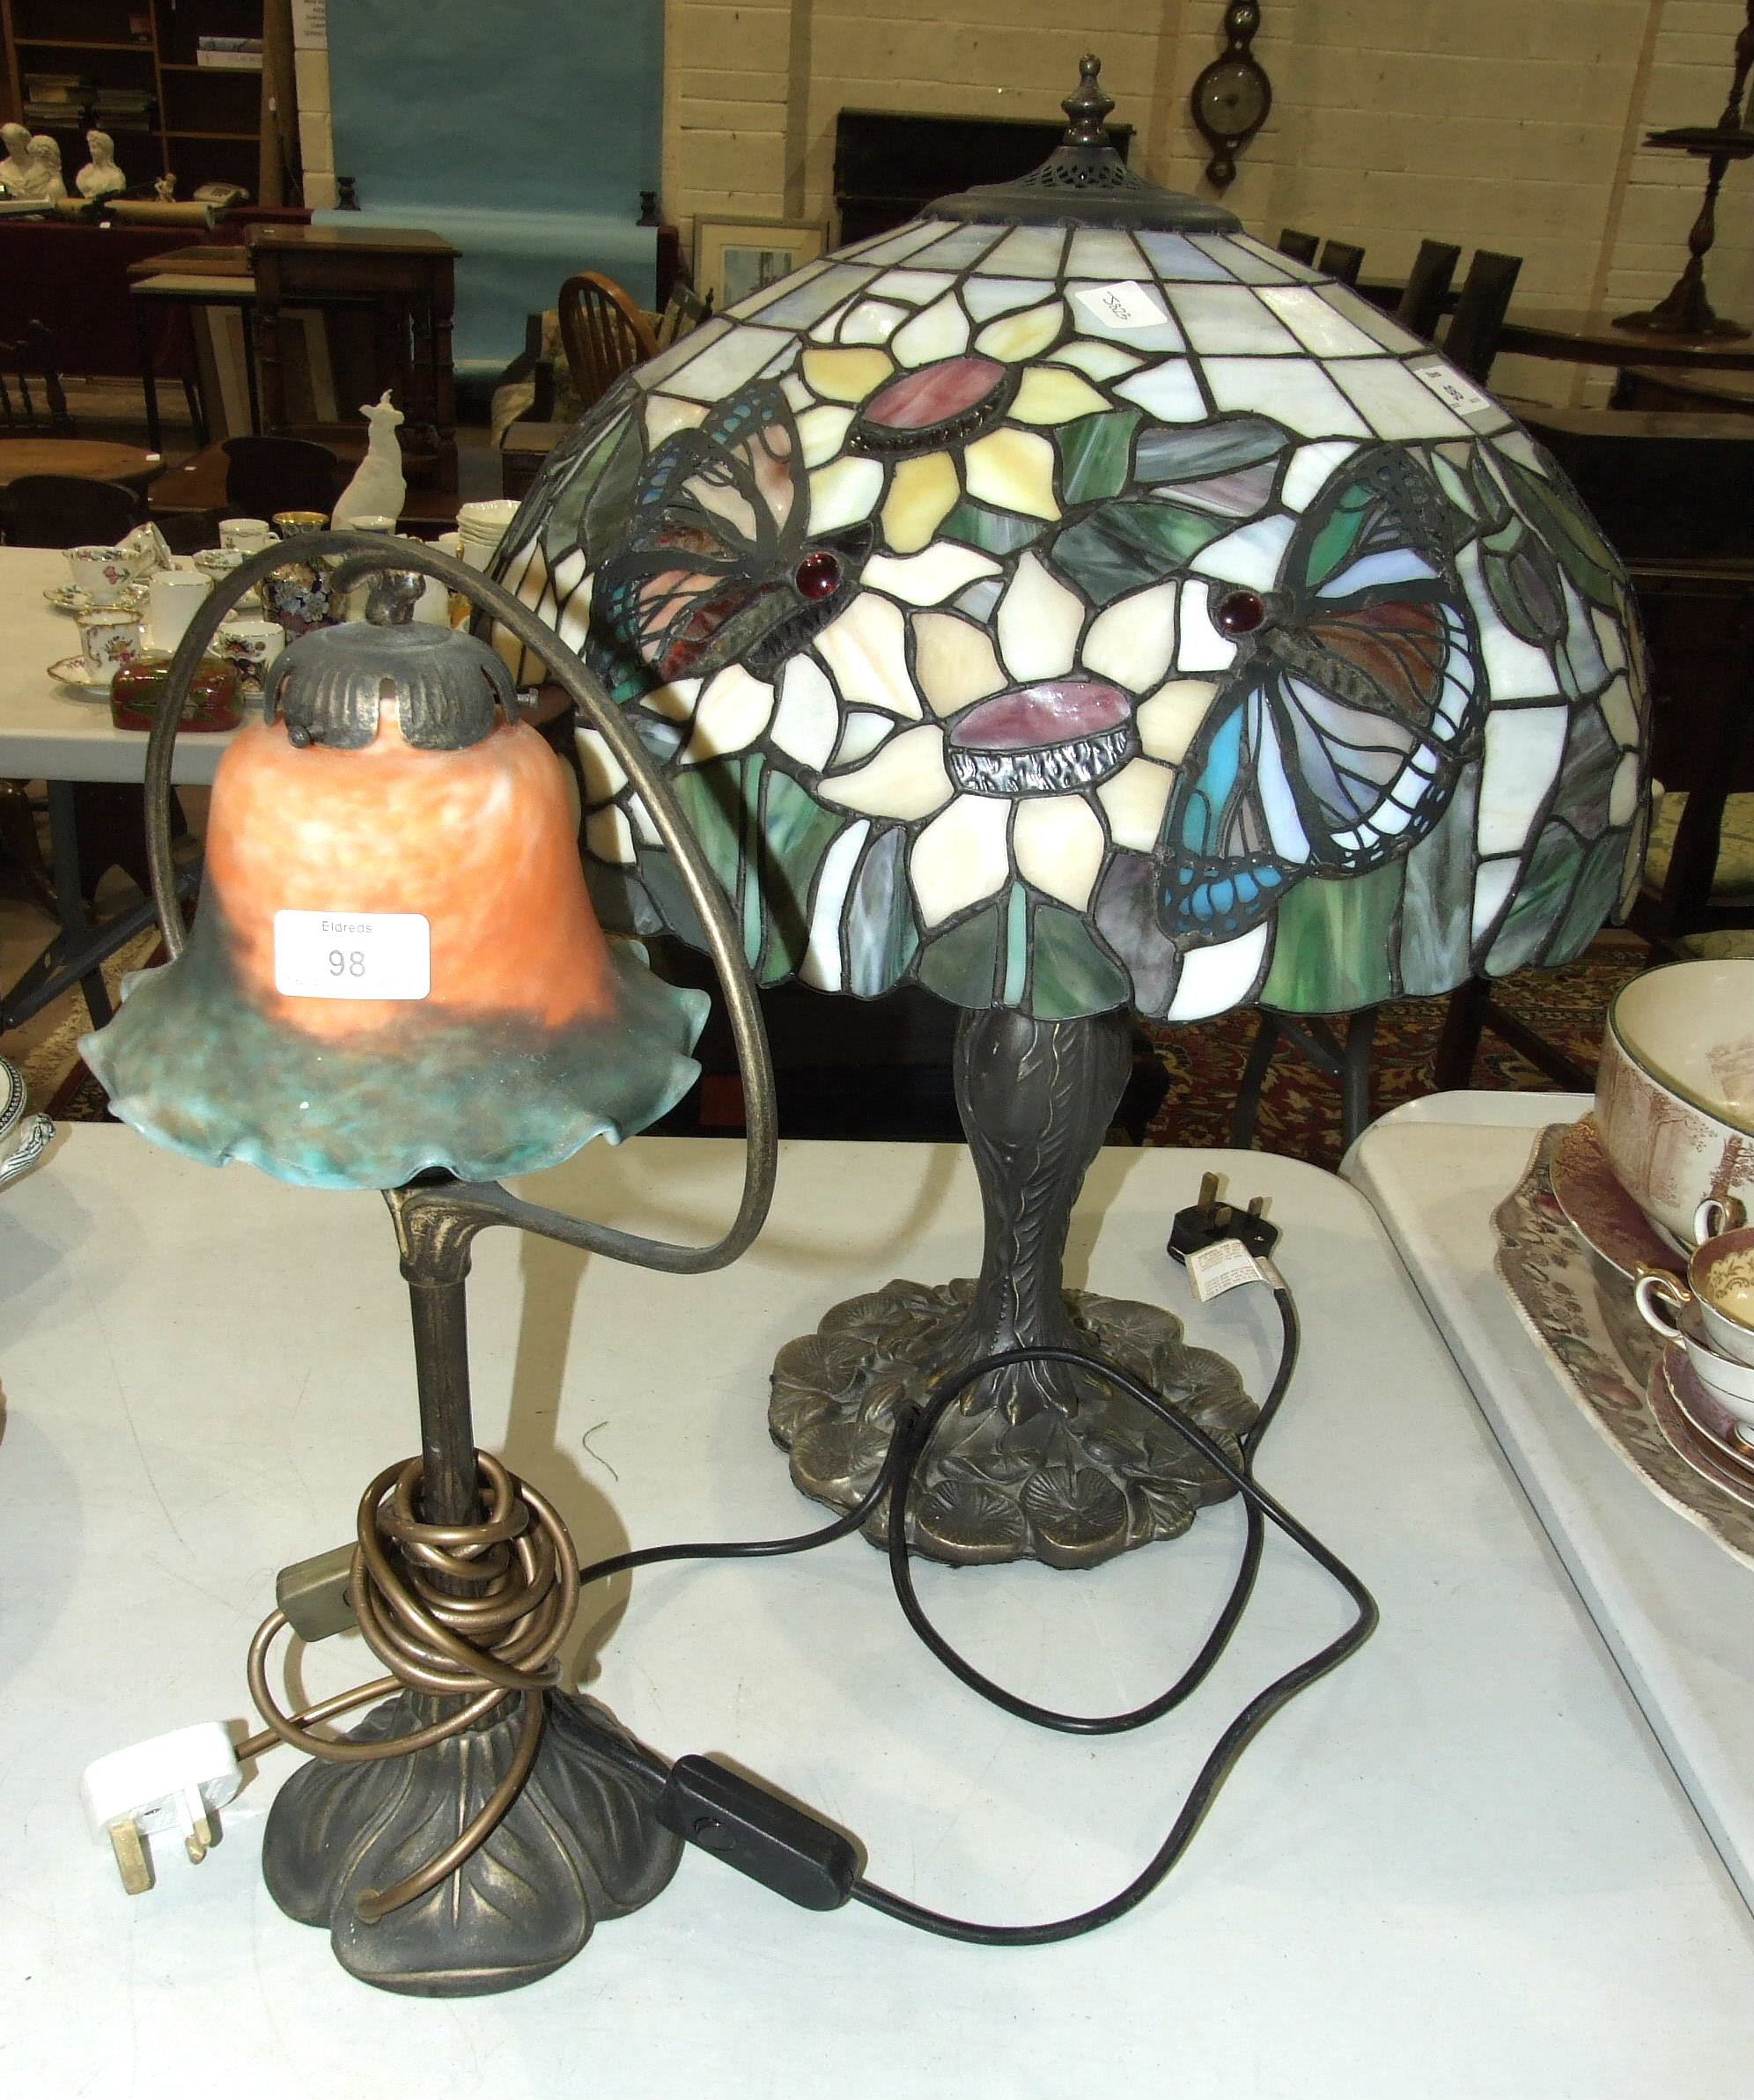 Lot 98 - A modern Tiffany style table lamp, the shade decorated with butterflies, 58cm high and another